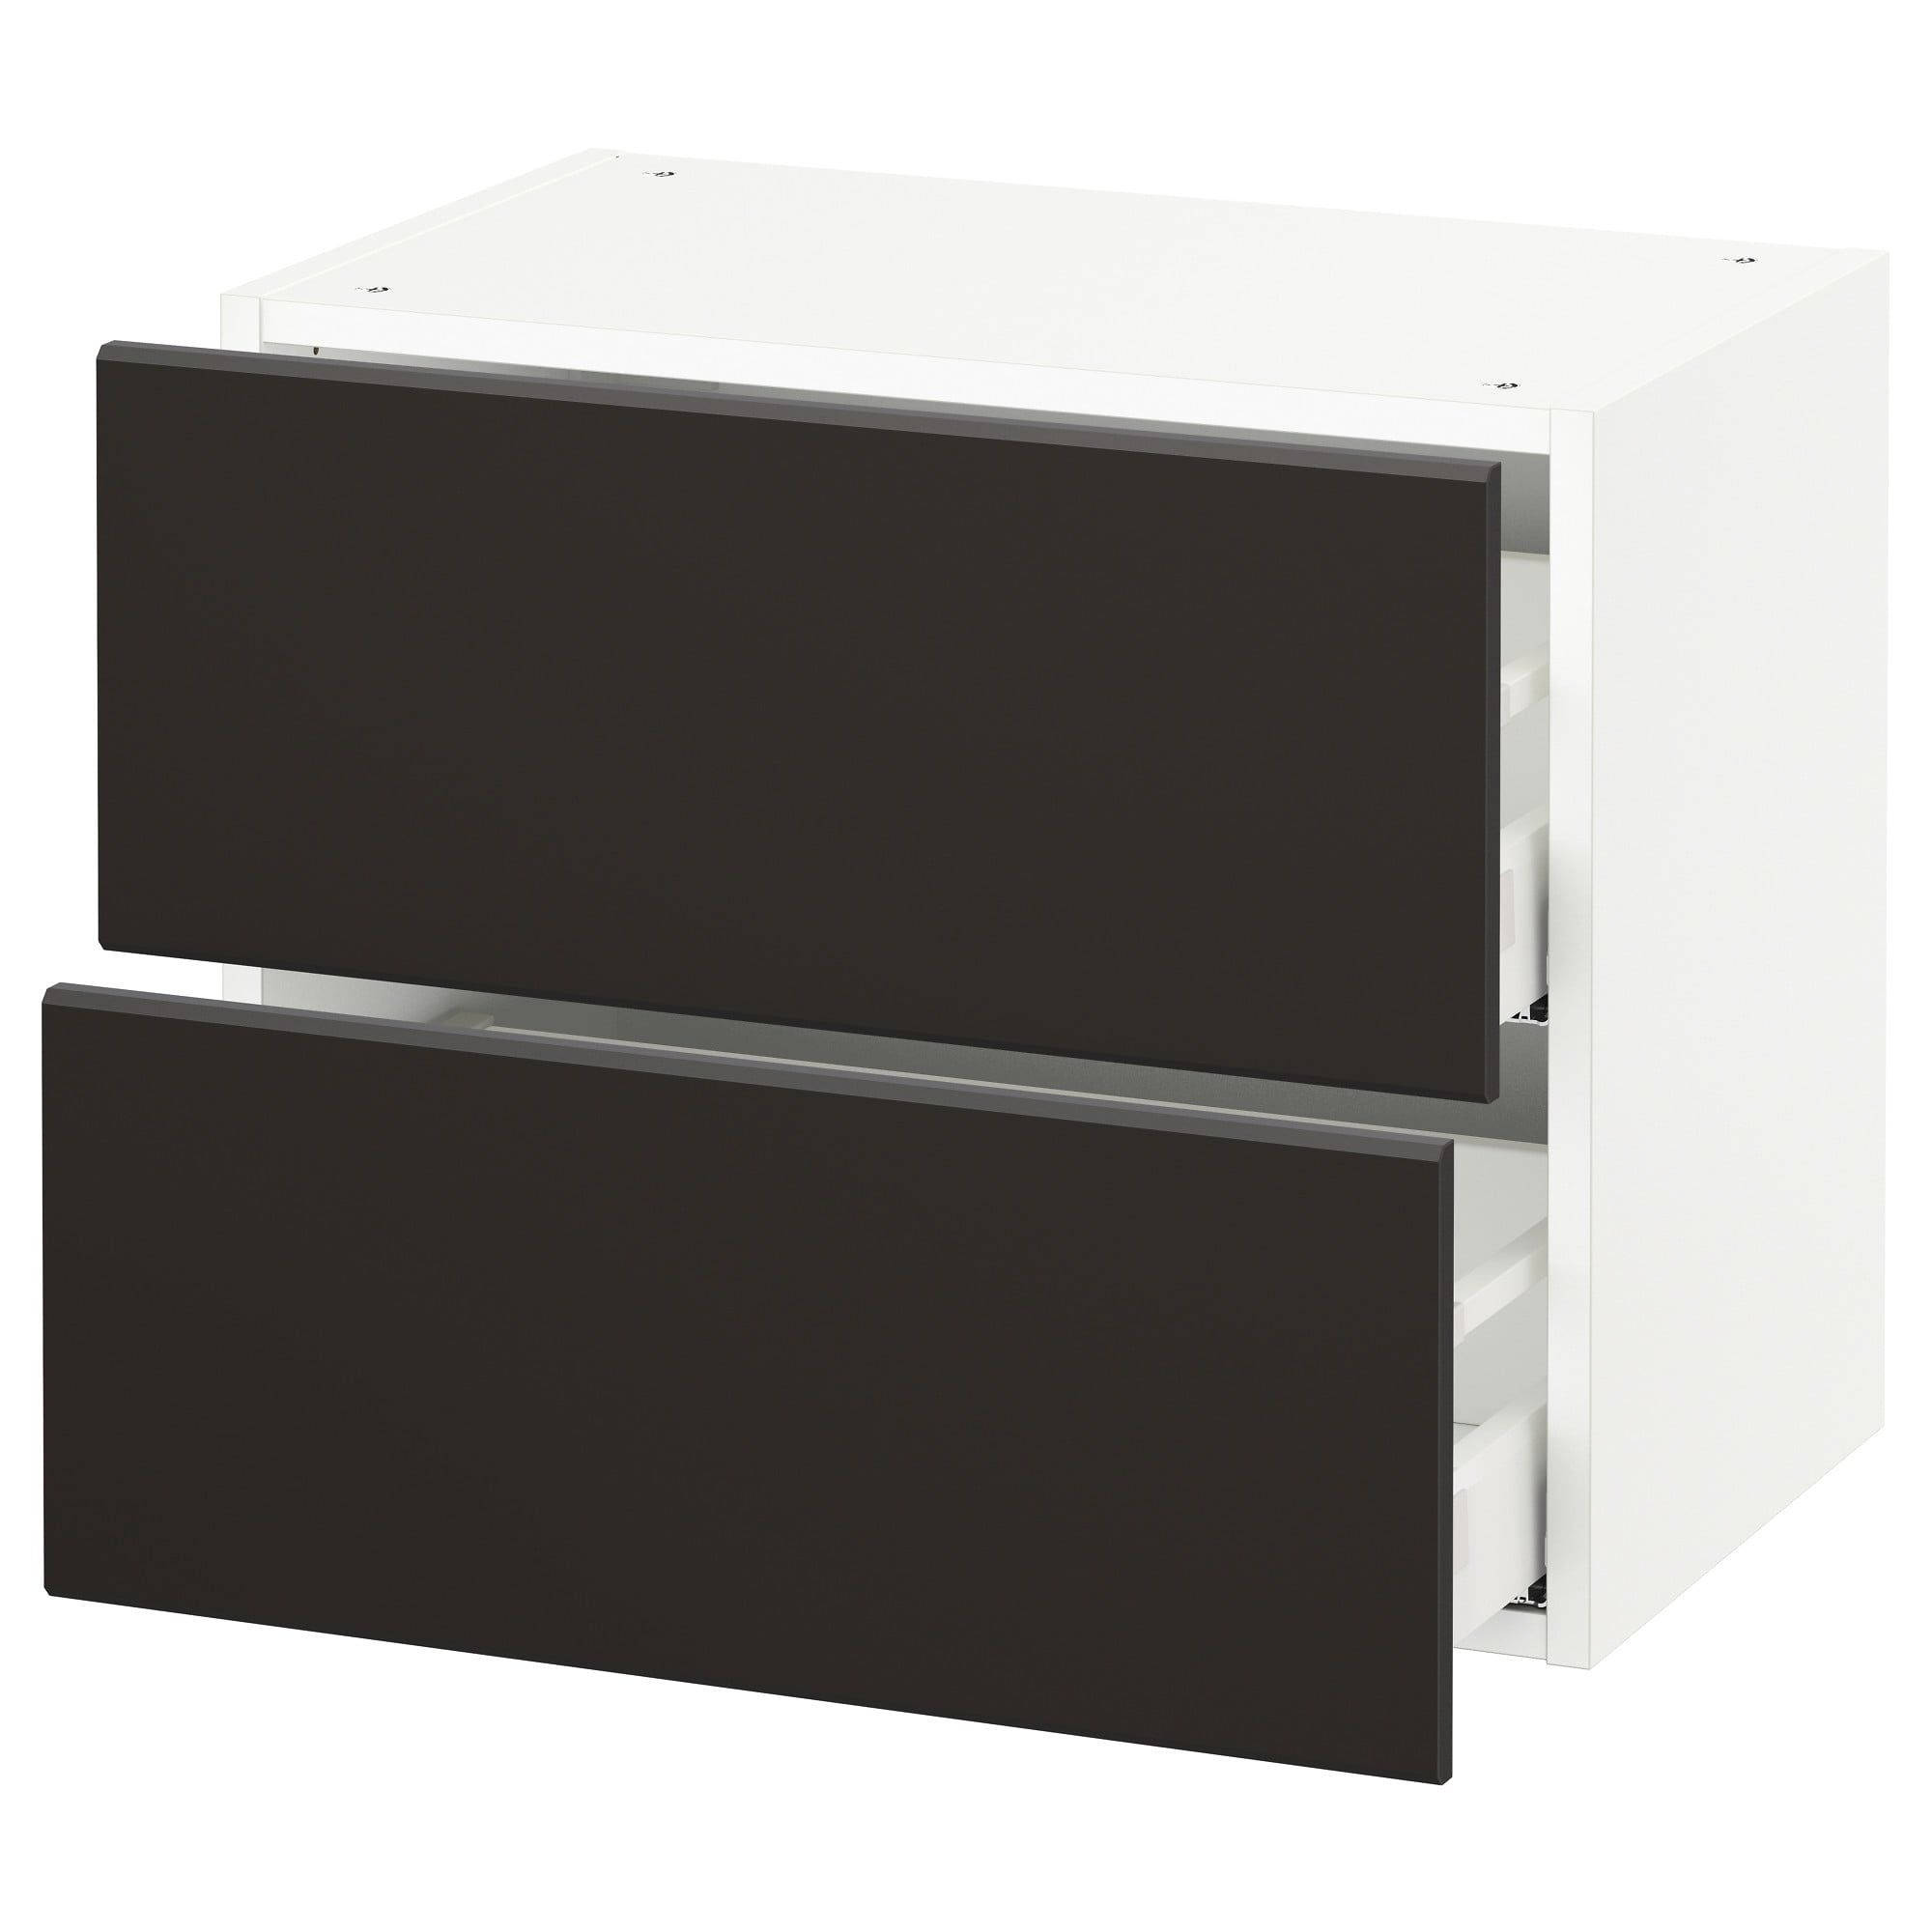 Ikea Sektion White Maximera Kungsbacka Anthracite Wall Cabinet With 2 Drawers Ikea Drawers White Chests